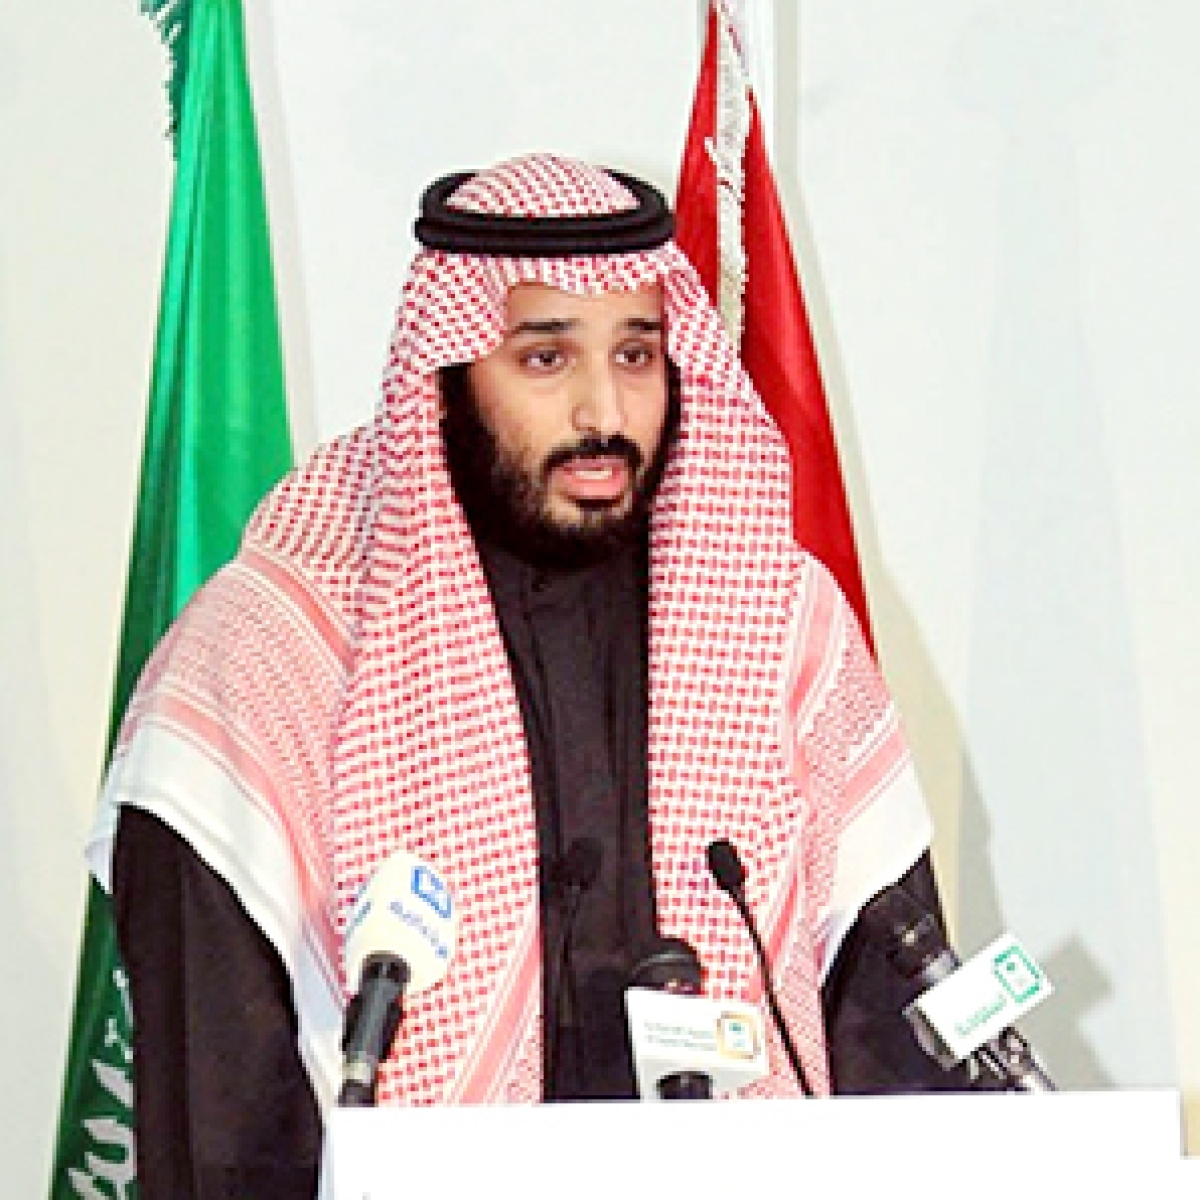 Oil prices can go 'unimaginably high numbers' if war between Saudi Arabia and Iran takes place: Saudi crown prince Riyadh